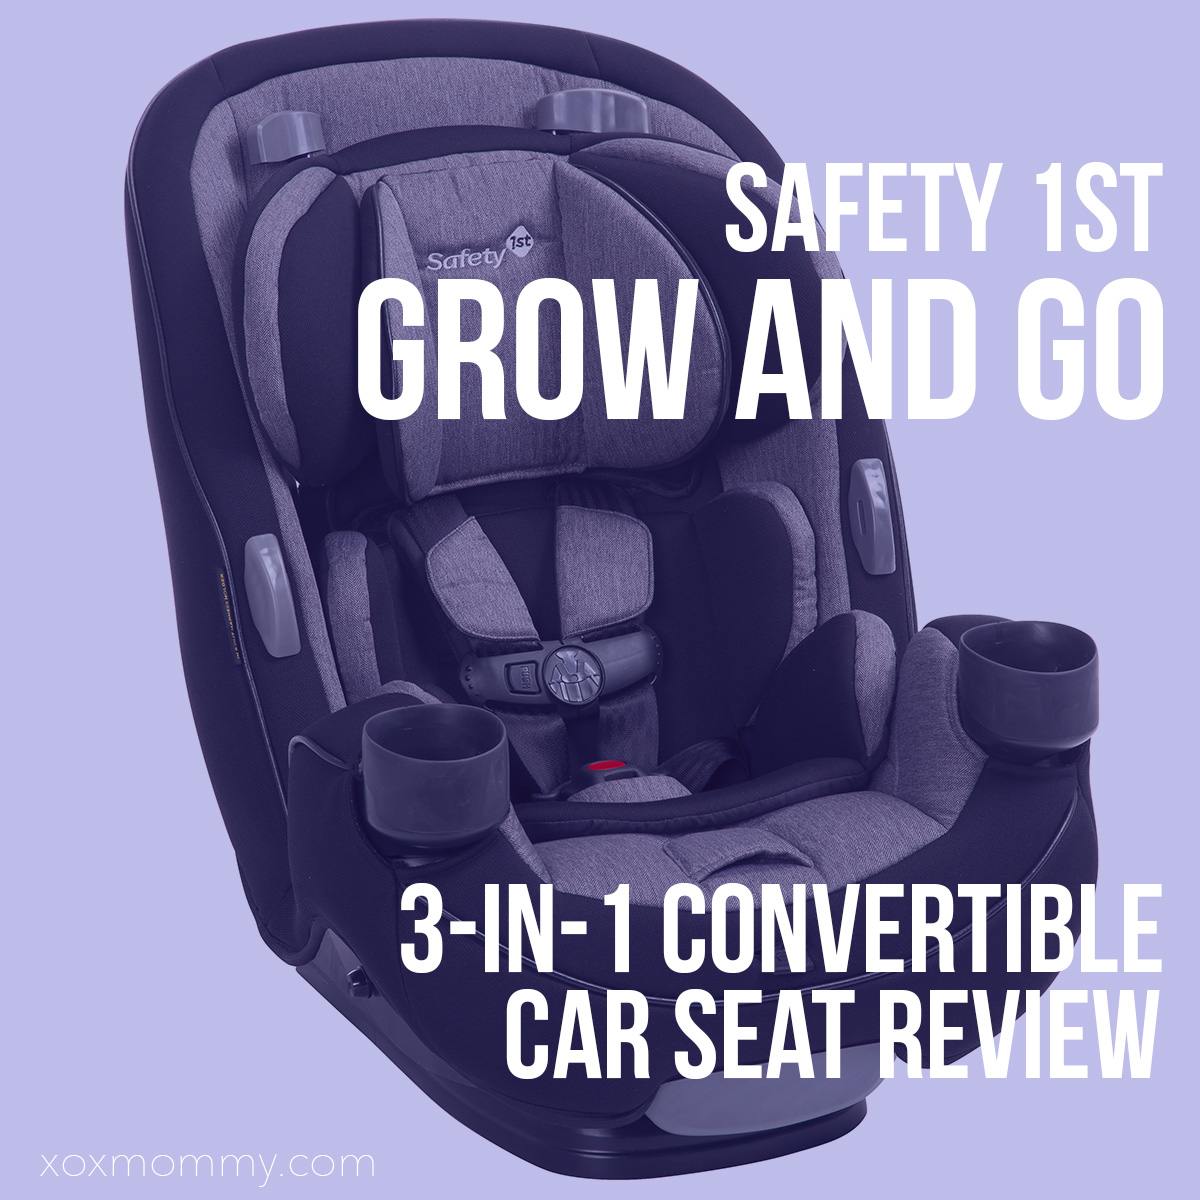 Safety 1st Grow and Go 3-in-1 Convertible Car Seat Review!